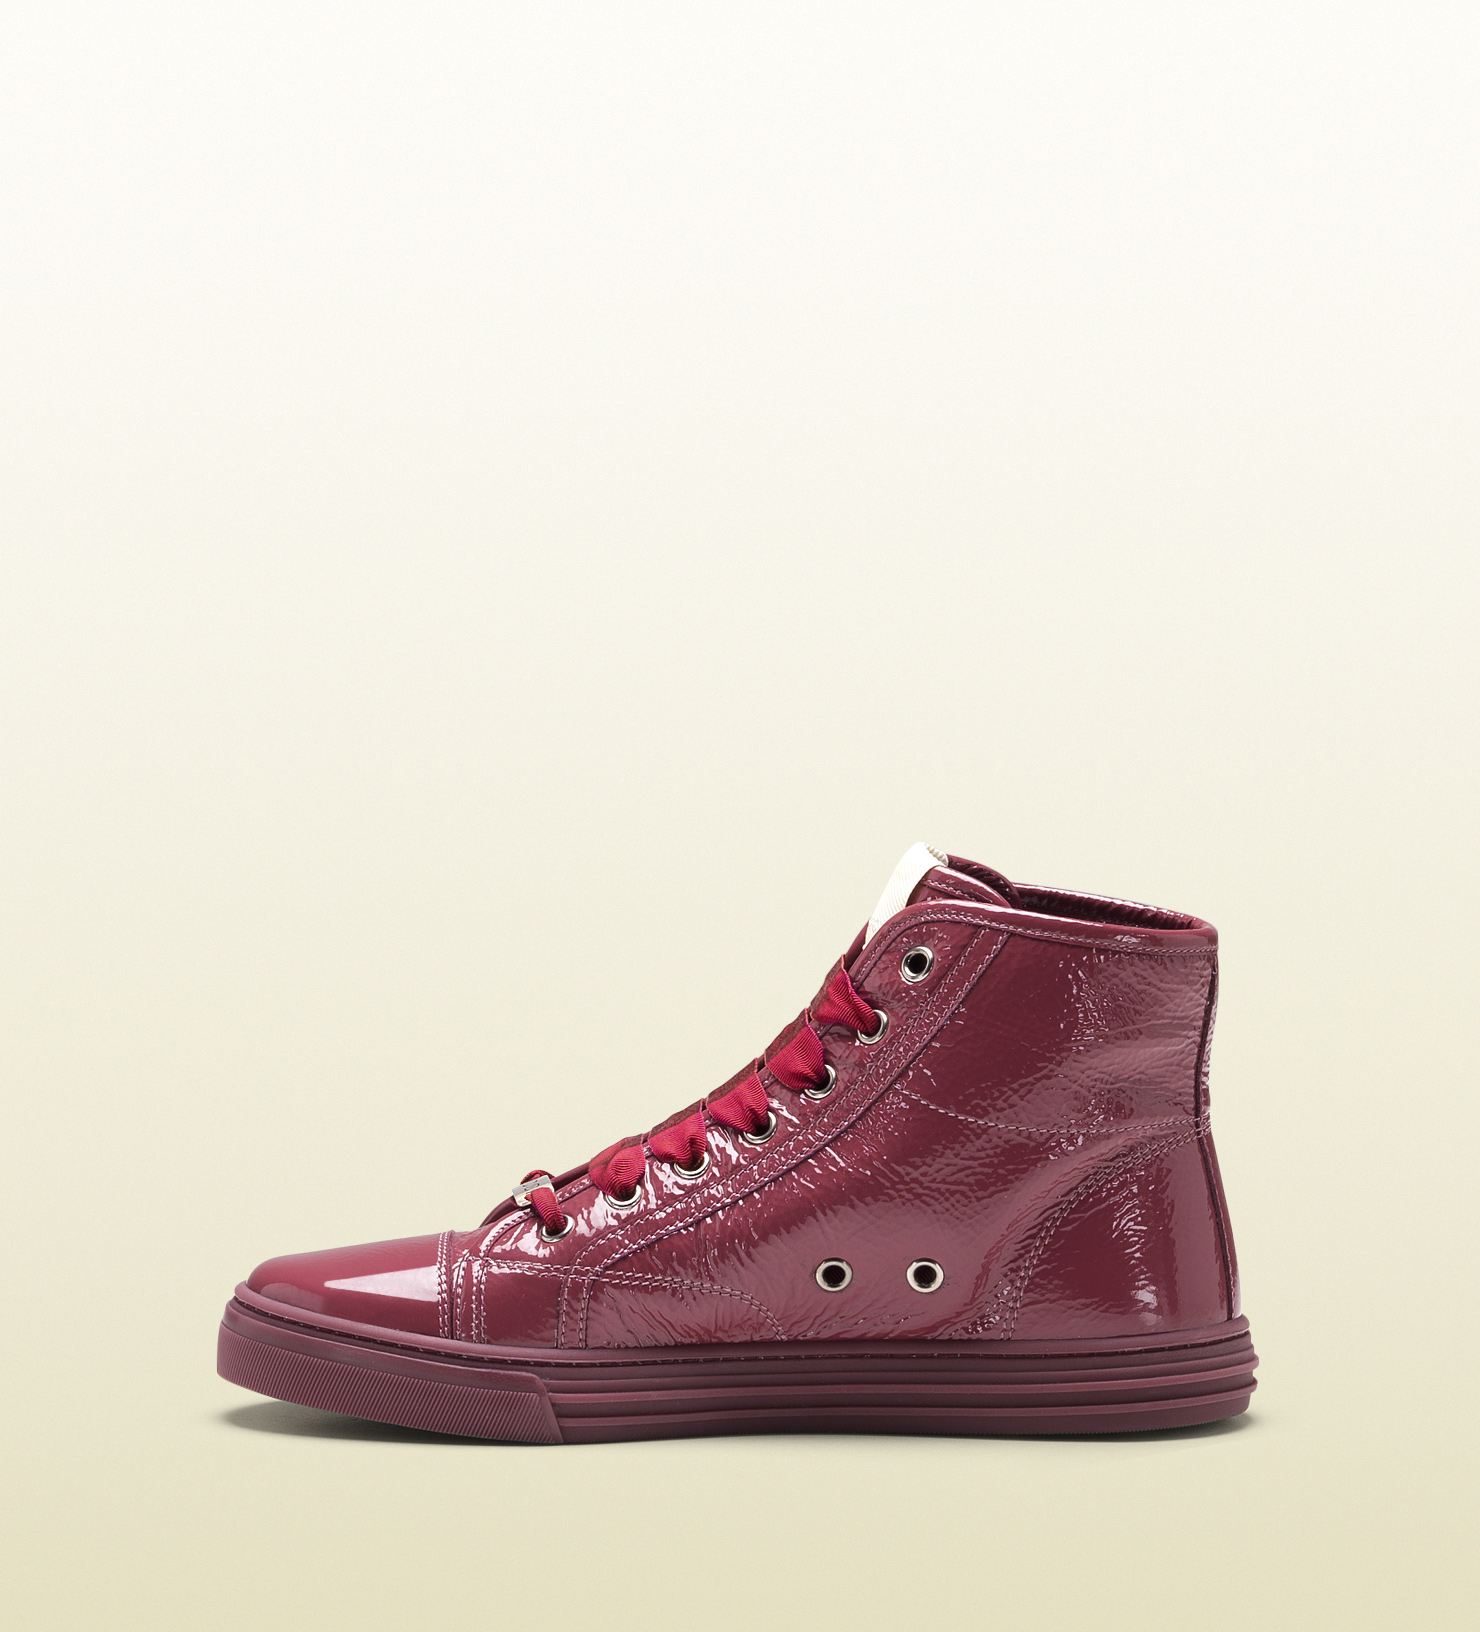 gucci california patent leather hightop sneaker in red for men pink lyst. Black Bedroom Furniture Sets. Home Design Ideas